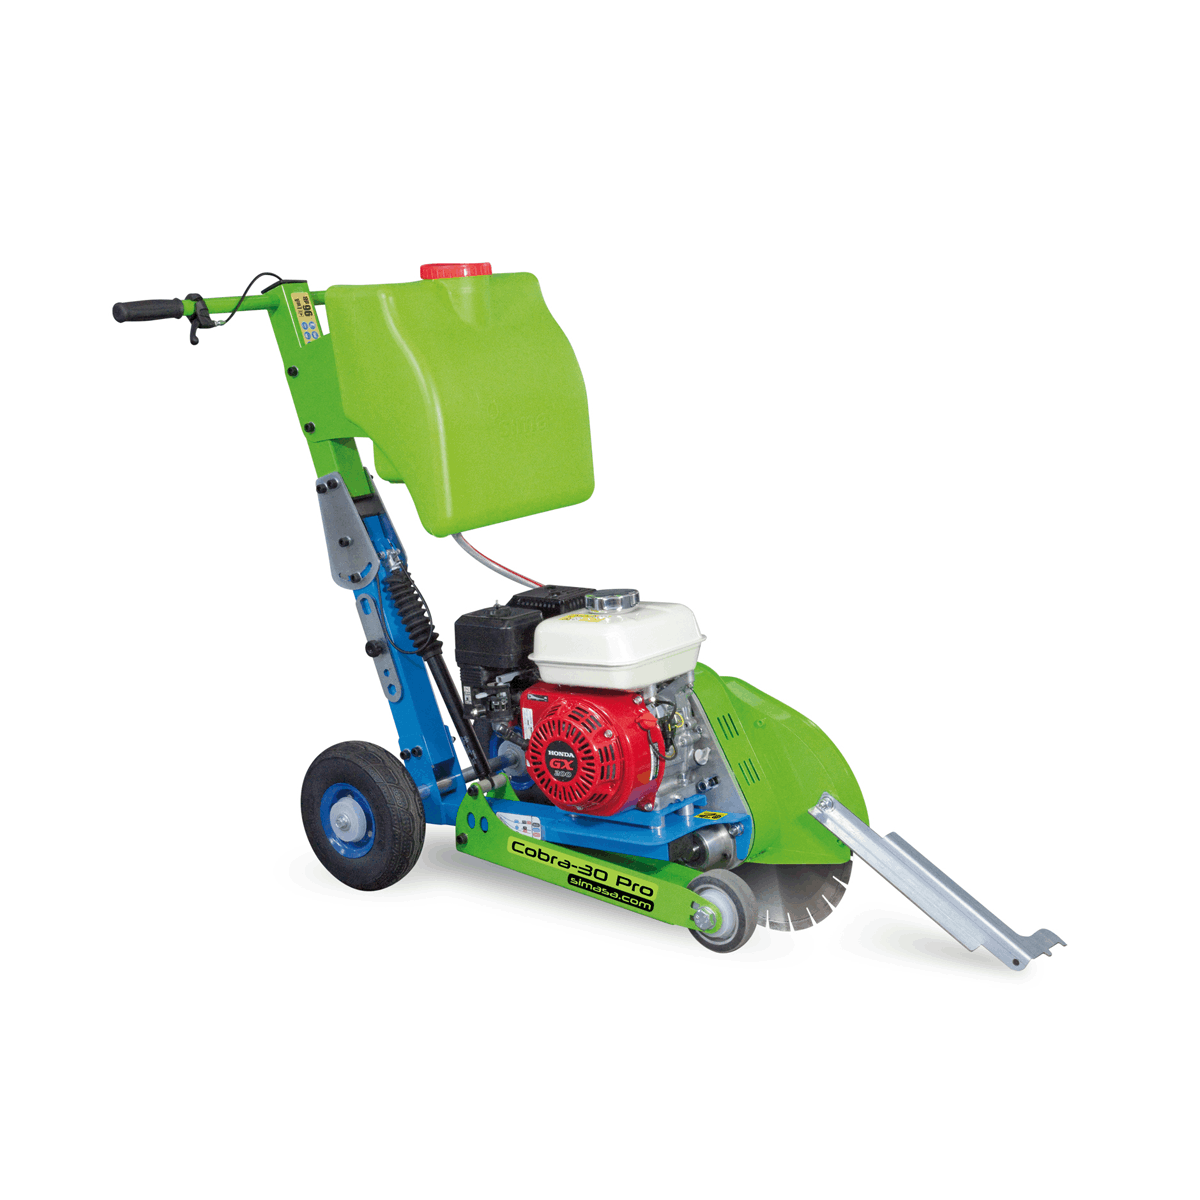 SIMA Cobra 30 Pro Road Saw 14 Inch 350mm